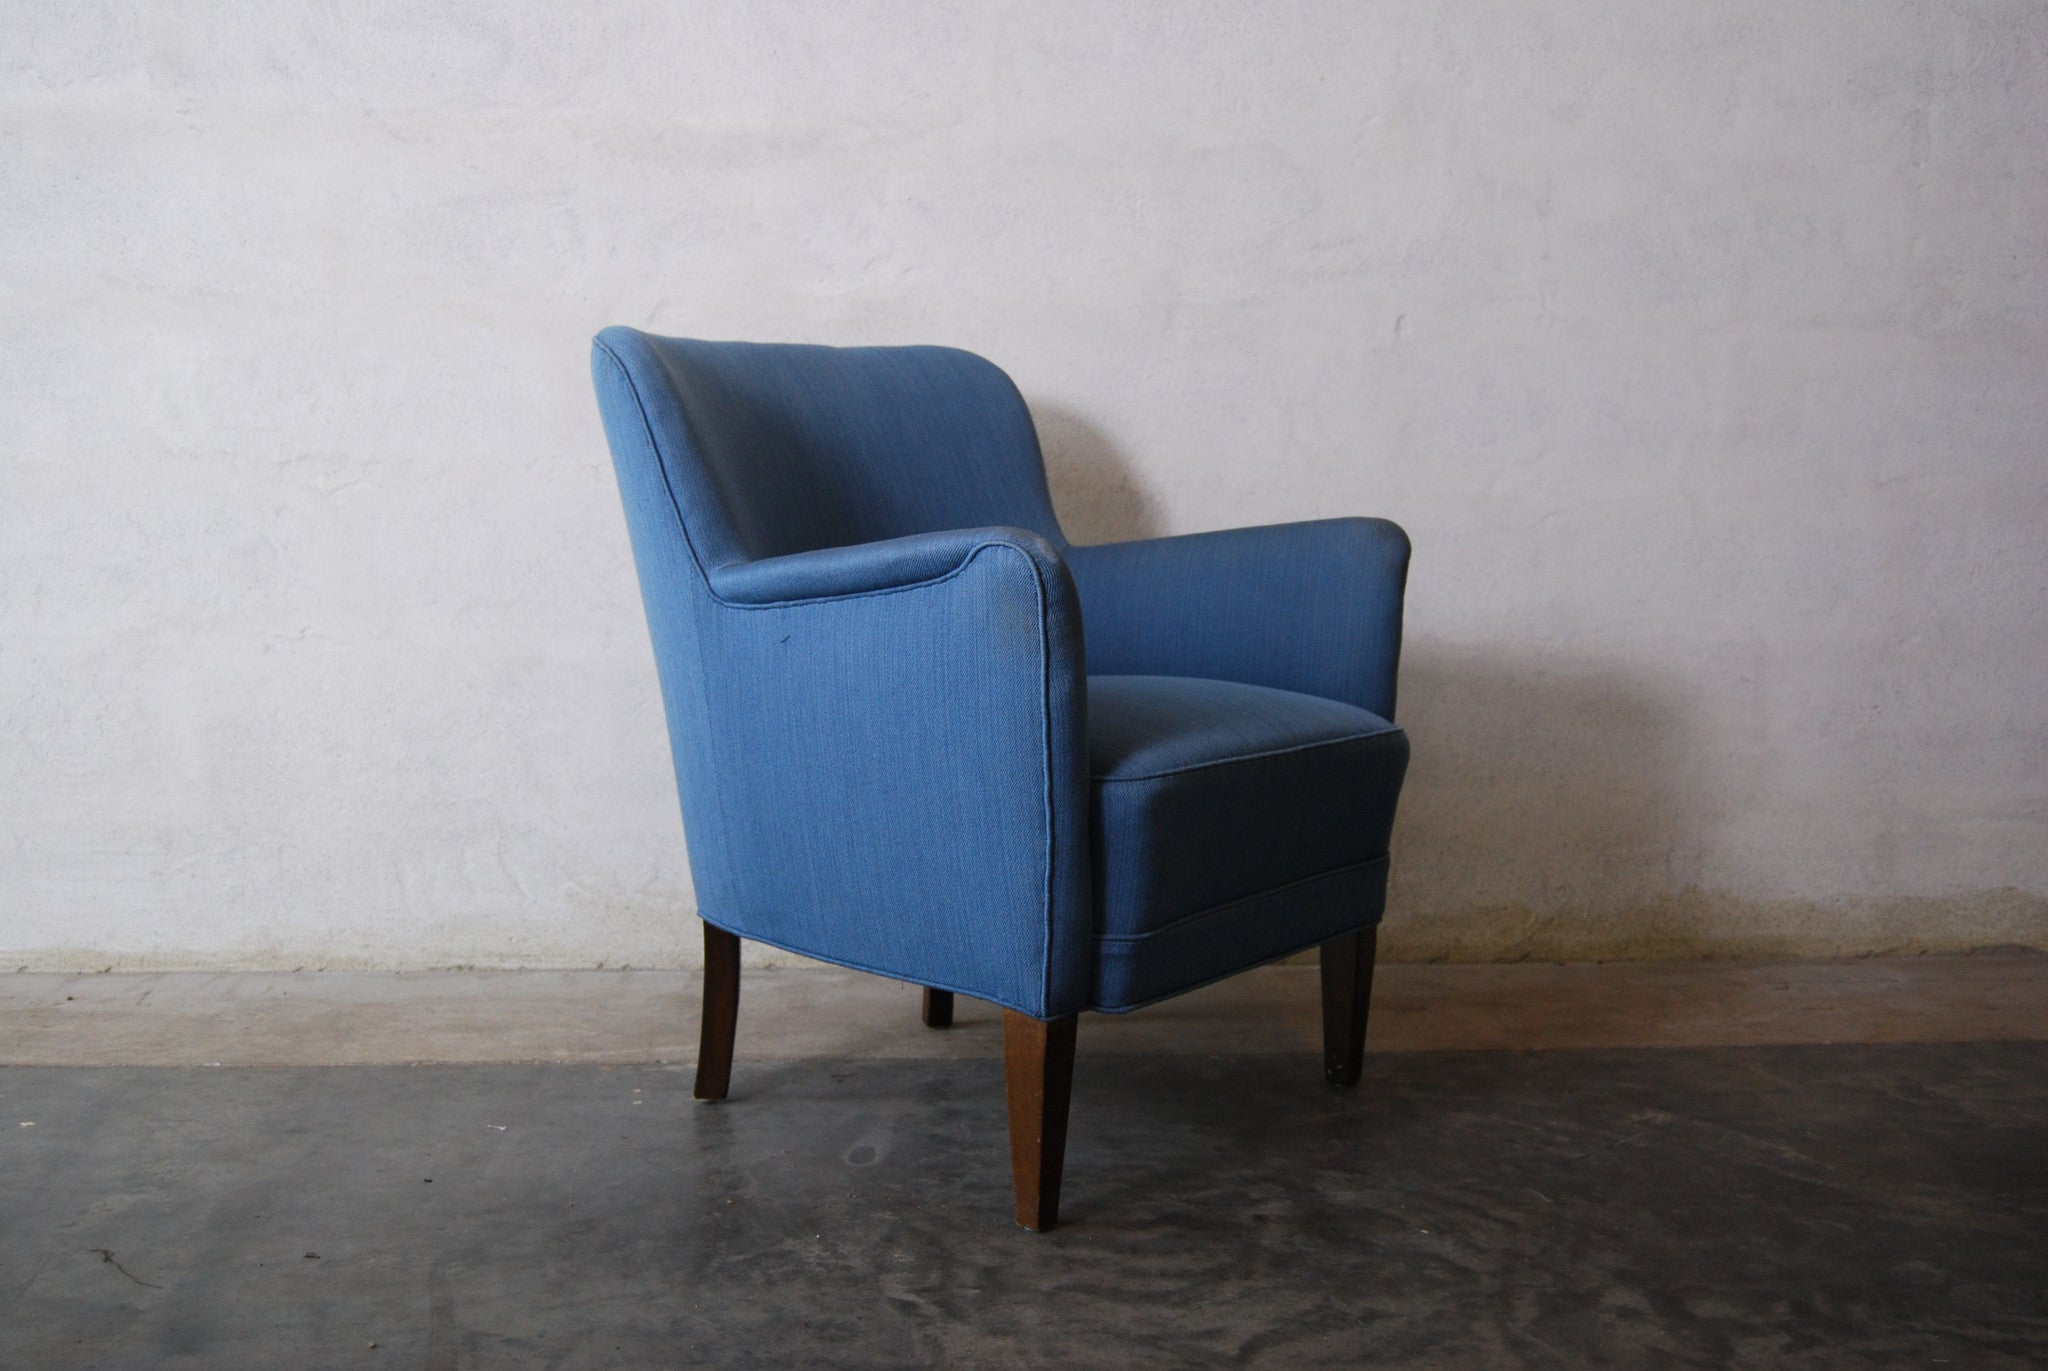 Lowback lounge chair in style of Malmsten